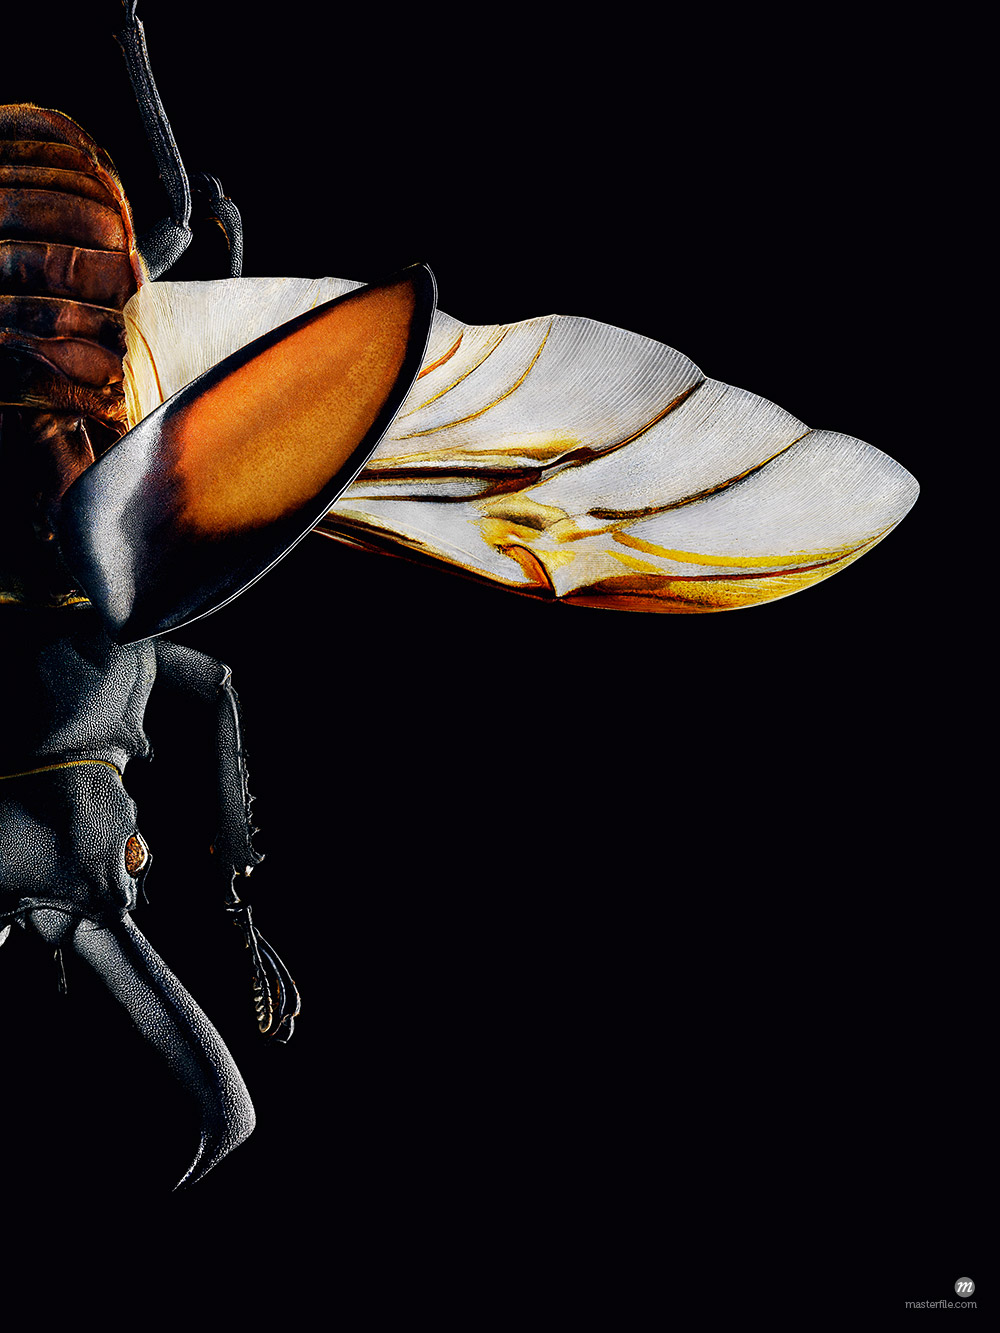 Close-Up of Insect © oliv / Masterfile